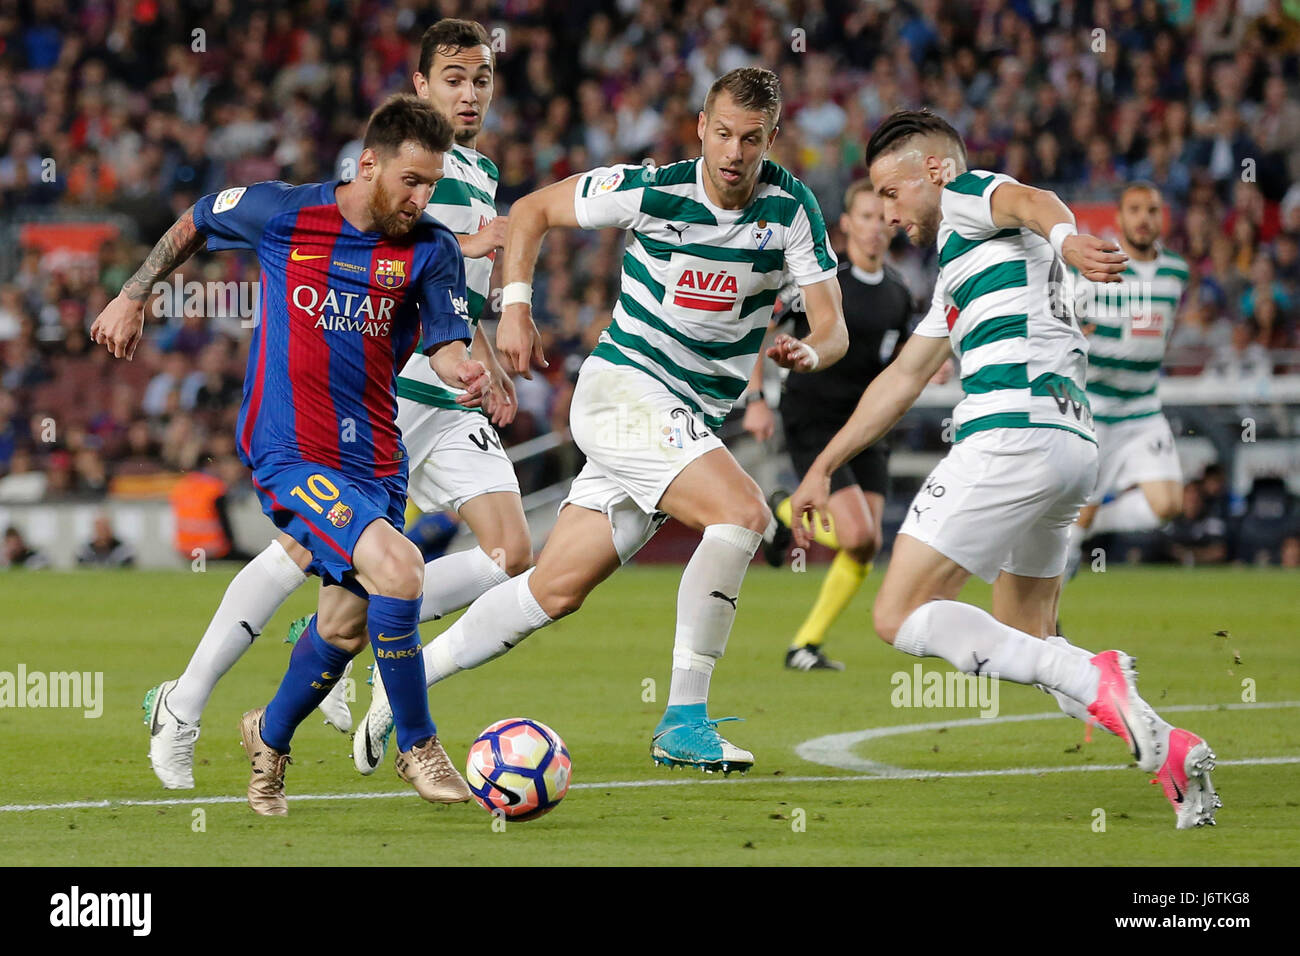 Barcelona, Spain. 21st May, 2017. Barcelona's Lionel Messi (L) runs with the ball during the Spanish first division - Stock Image